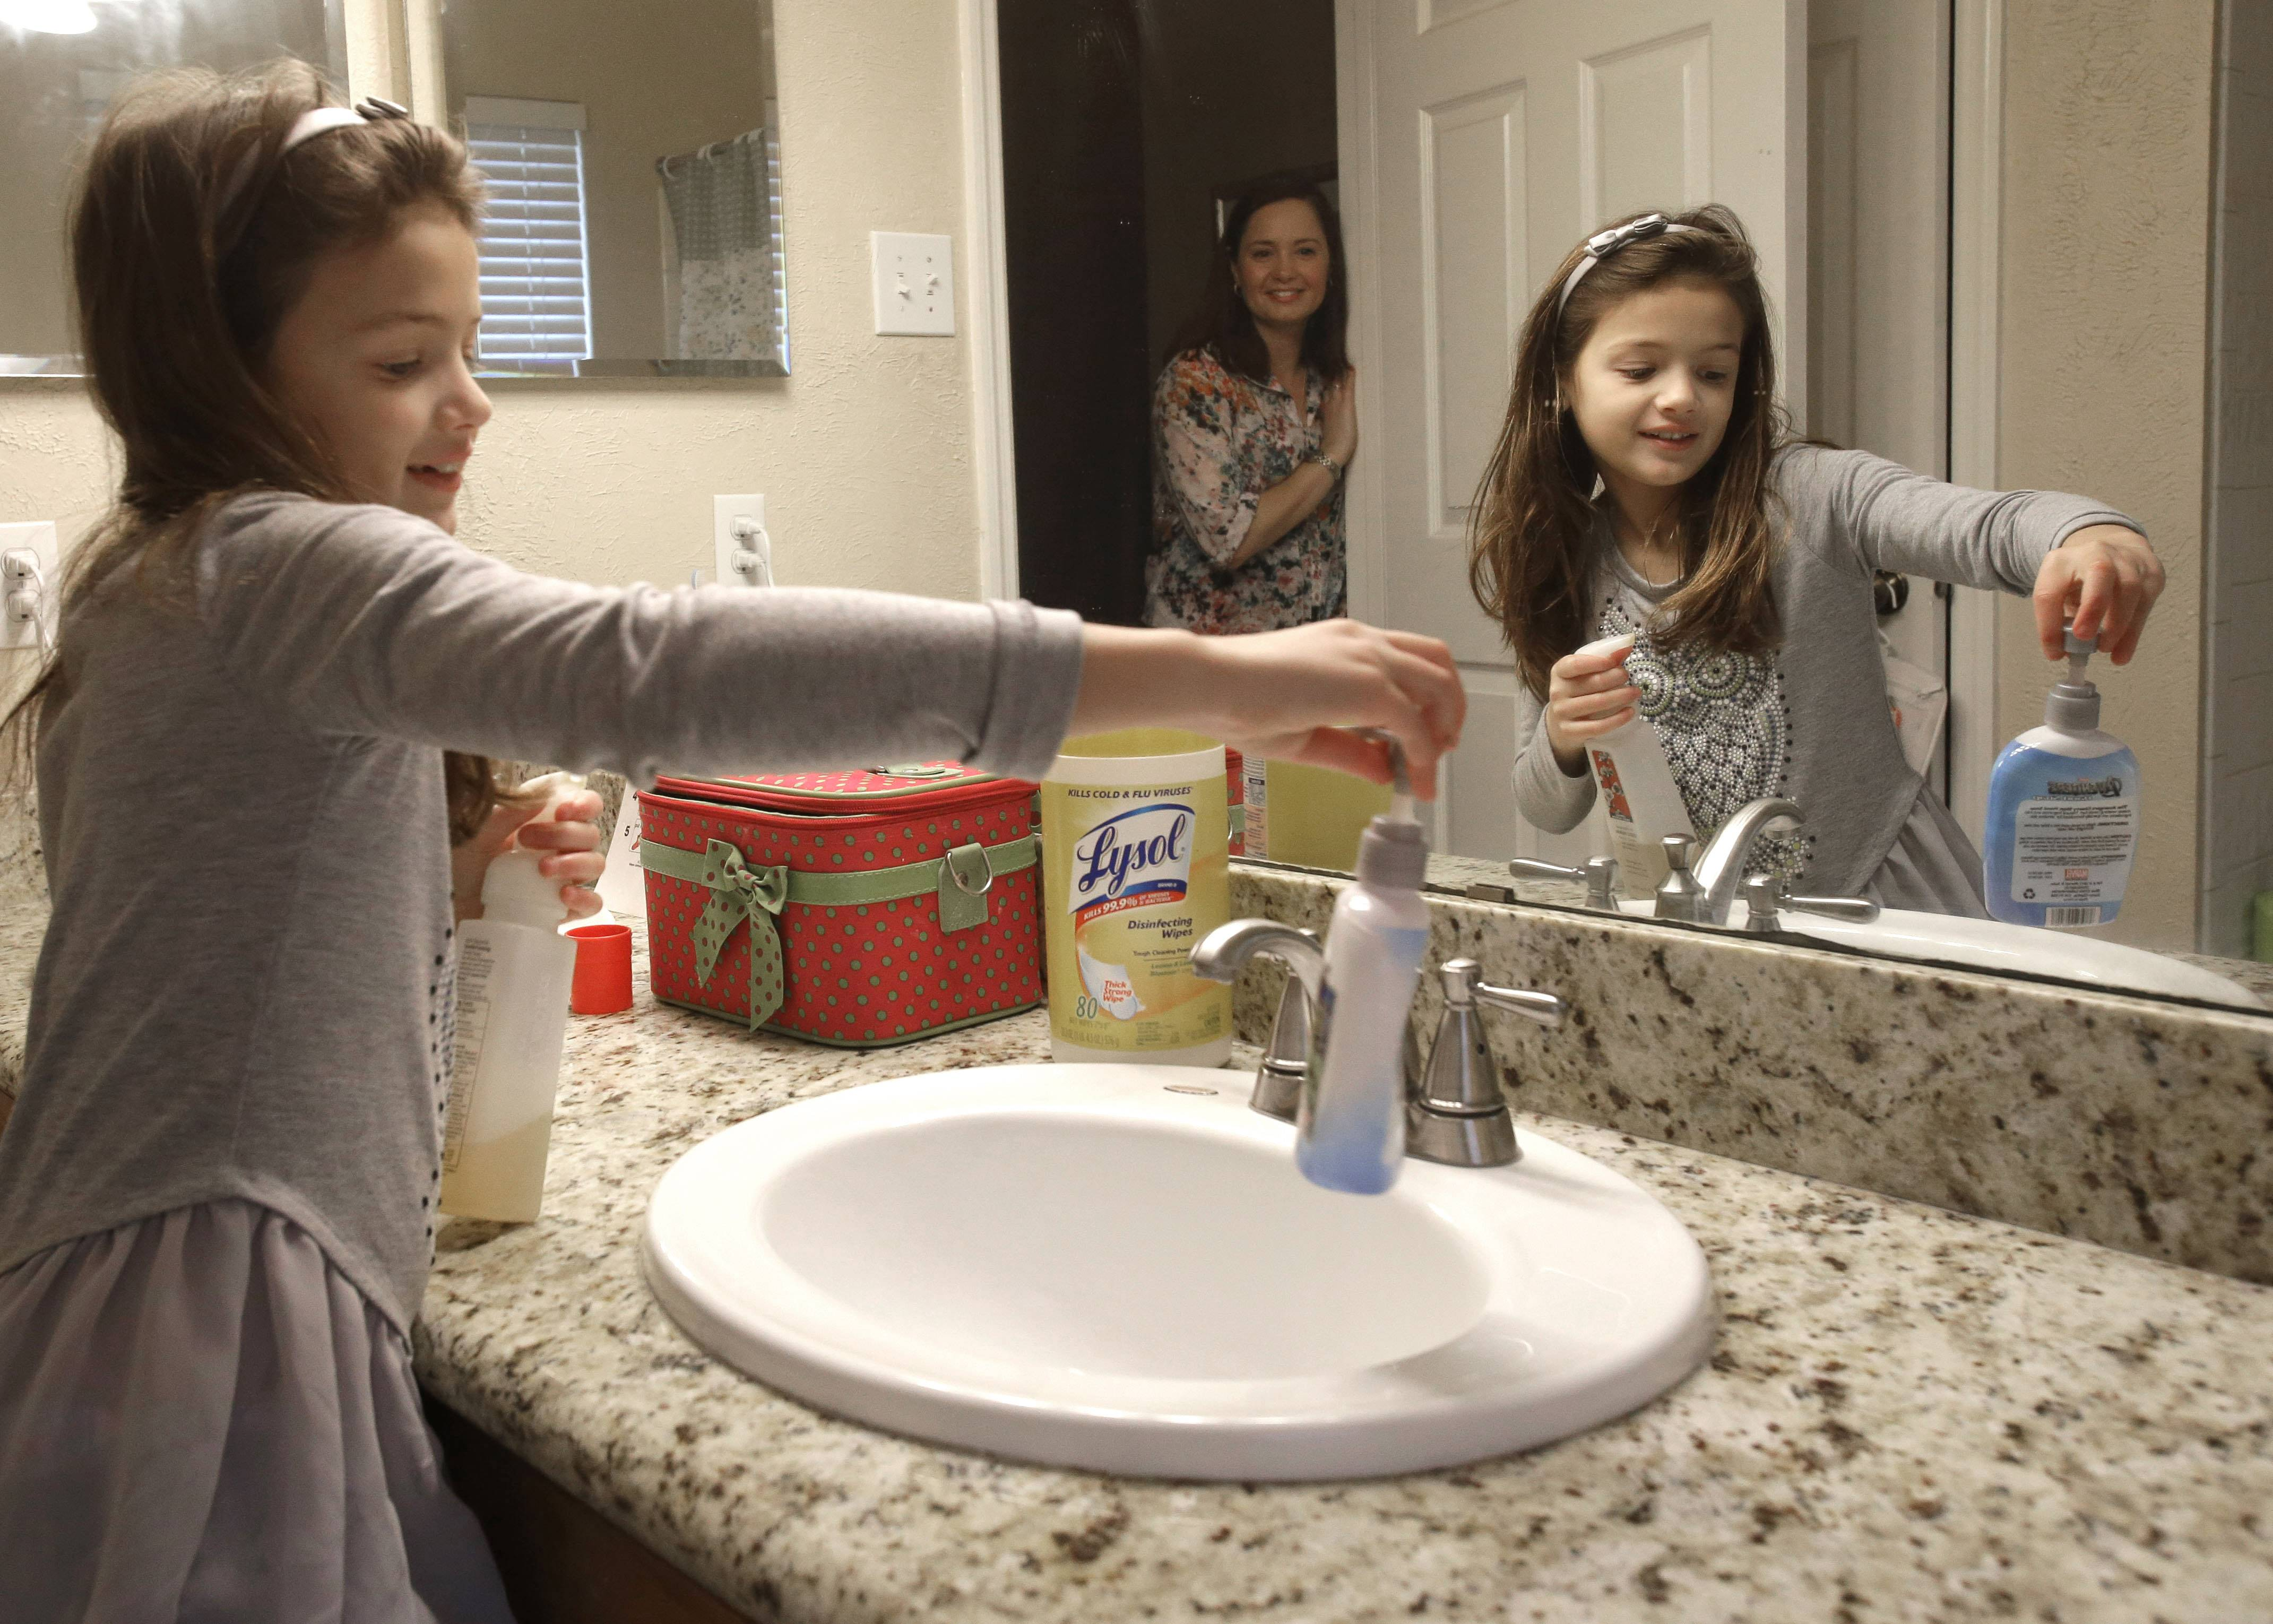 Lily Cherry, 8, cleans her bathroom as her mother, Andrea, supervises at their home in Kingwood, Texas. Cherry has passed on her childhood practice of doing chores to her own children believing it gives them a sense of family responsibility.